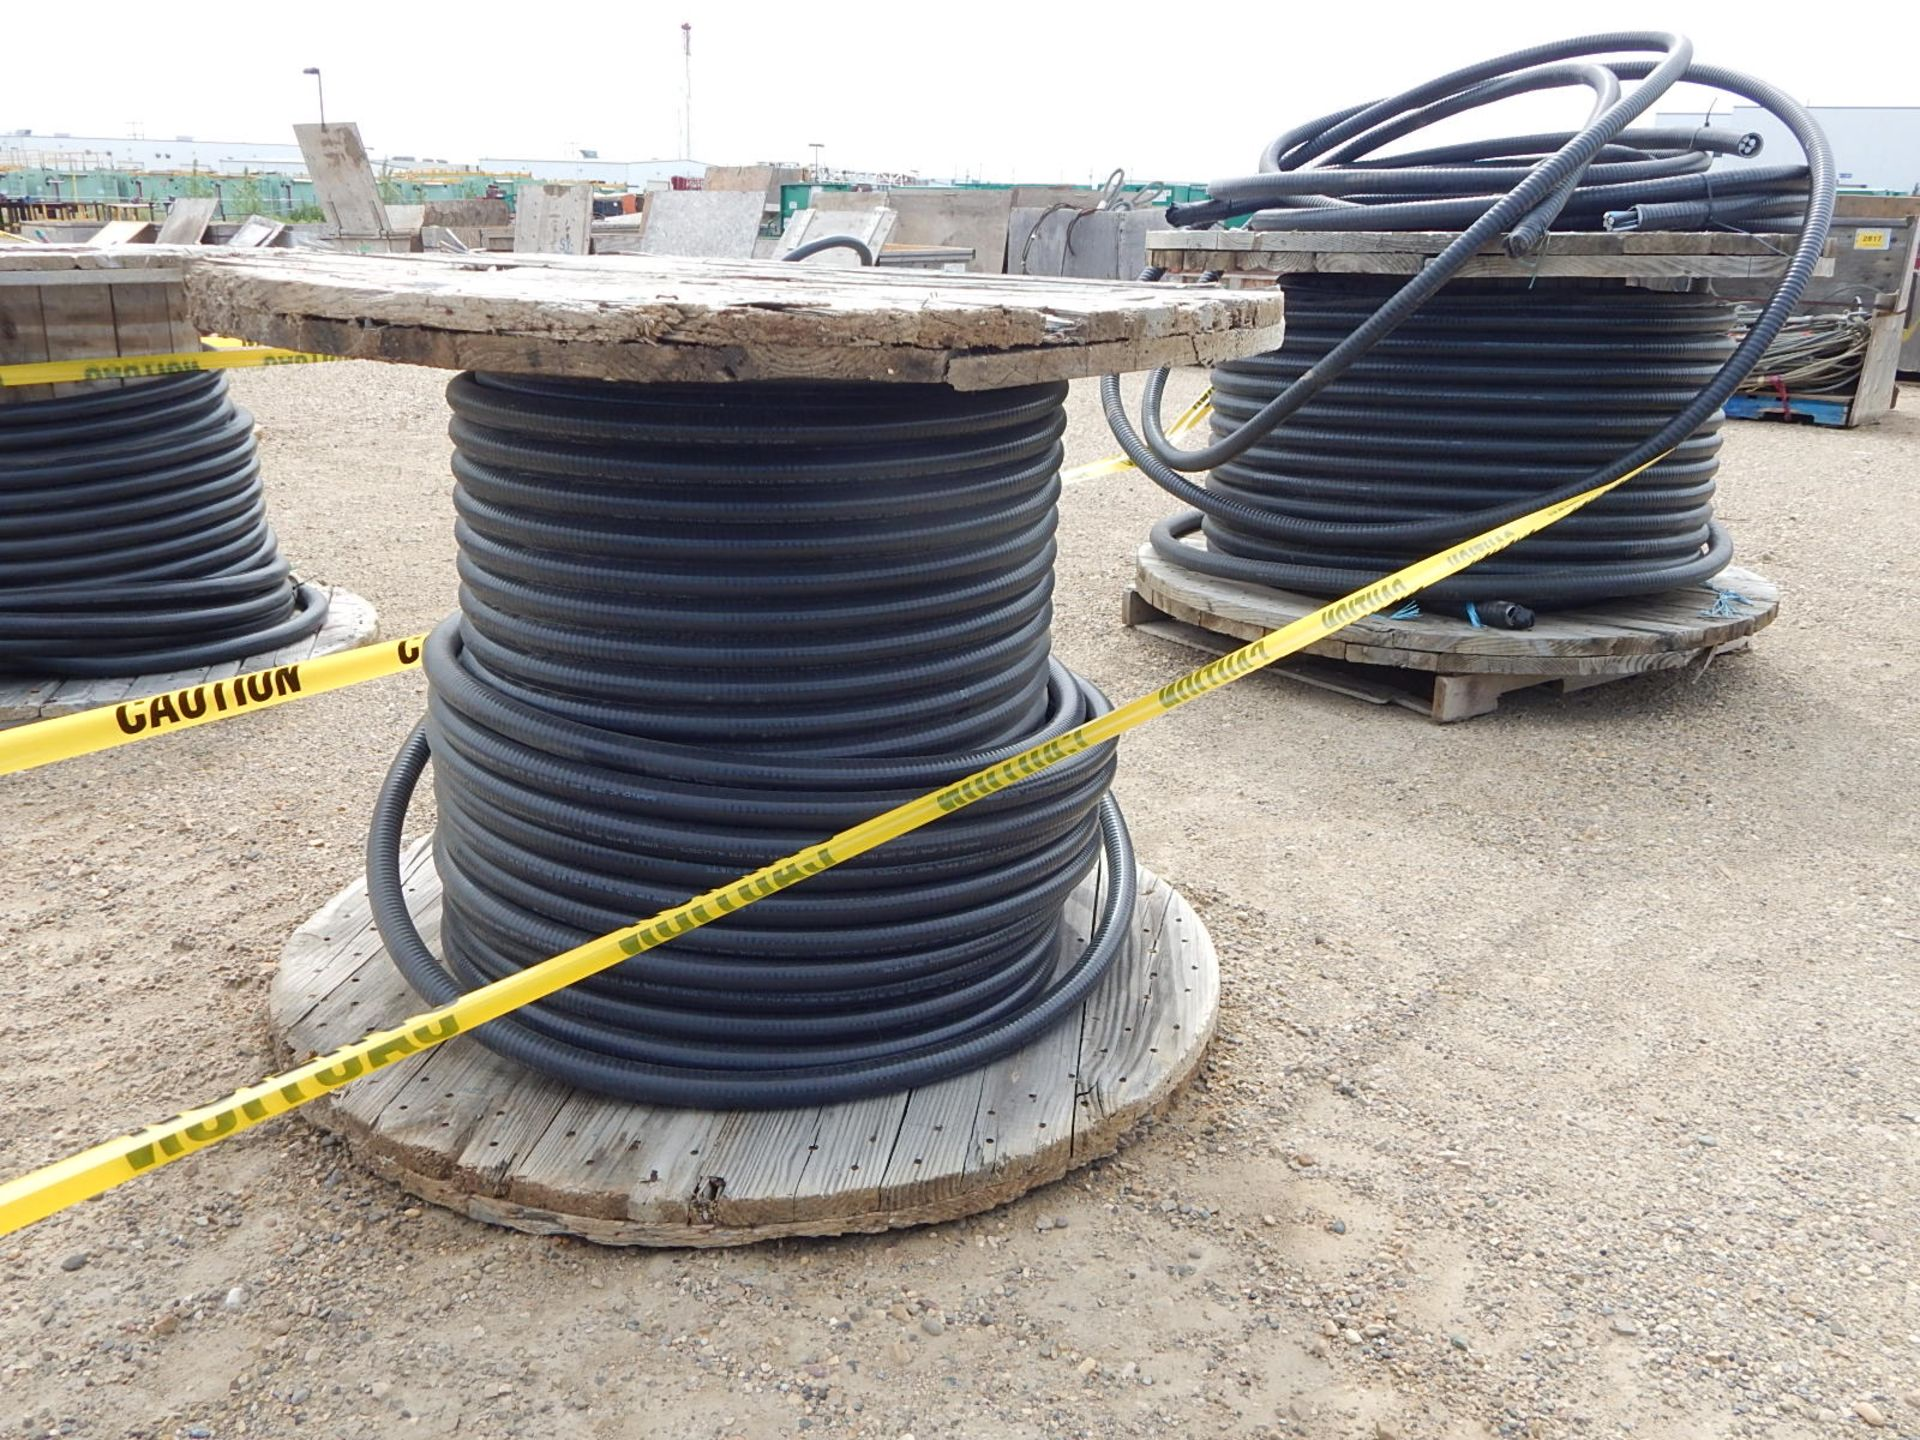 LOT/ REELS OF ASSORTED ELECTRICAL CABLE - Image 4 of 4